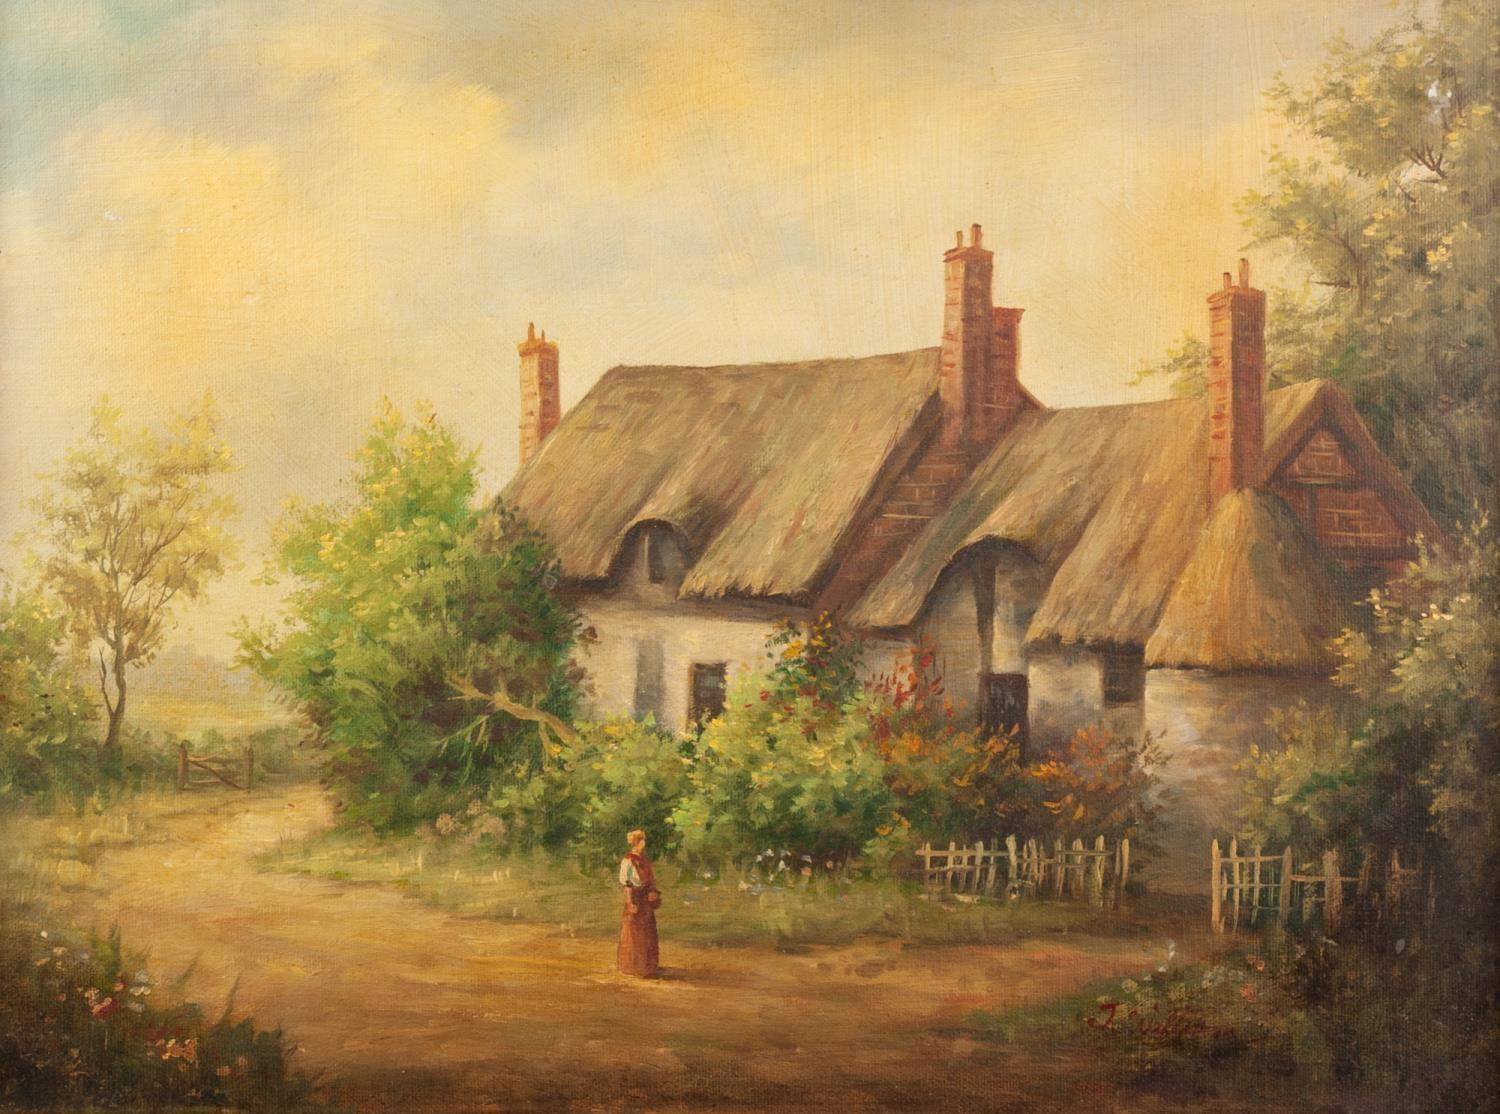 JG ATKINSON EARLY 20th CENTURY OIL PAINTING 'In the Duddon Valley', rural scene, cottage by a - Image 2 of 2